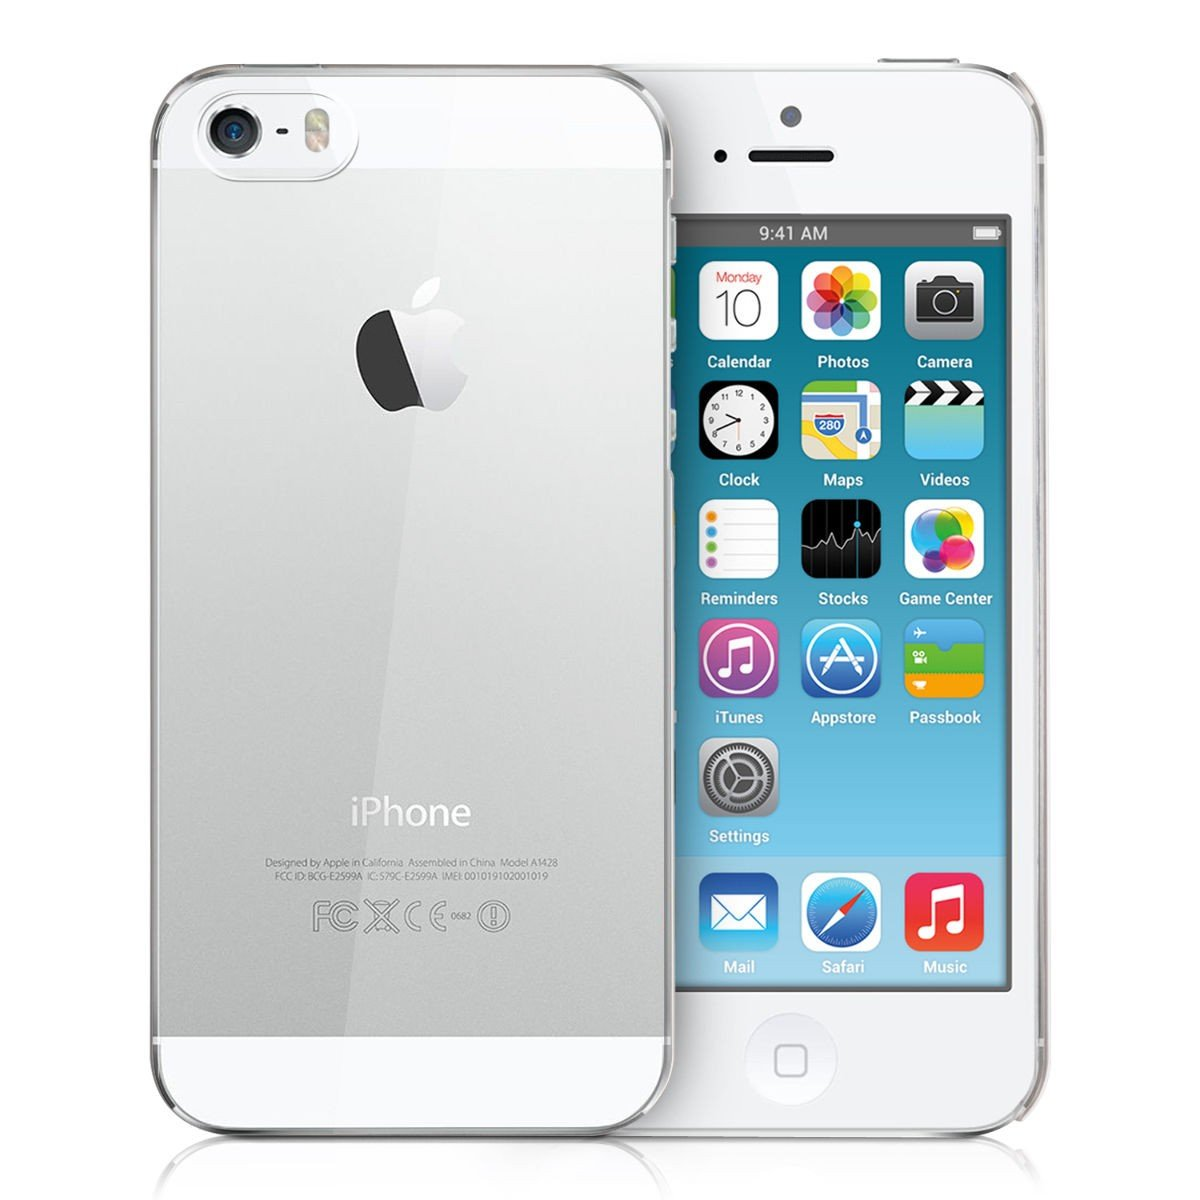 Apple iPhone 5 review: Apple iPhone 5 - CNET | 1200x1200